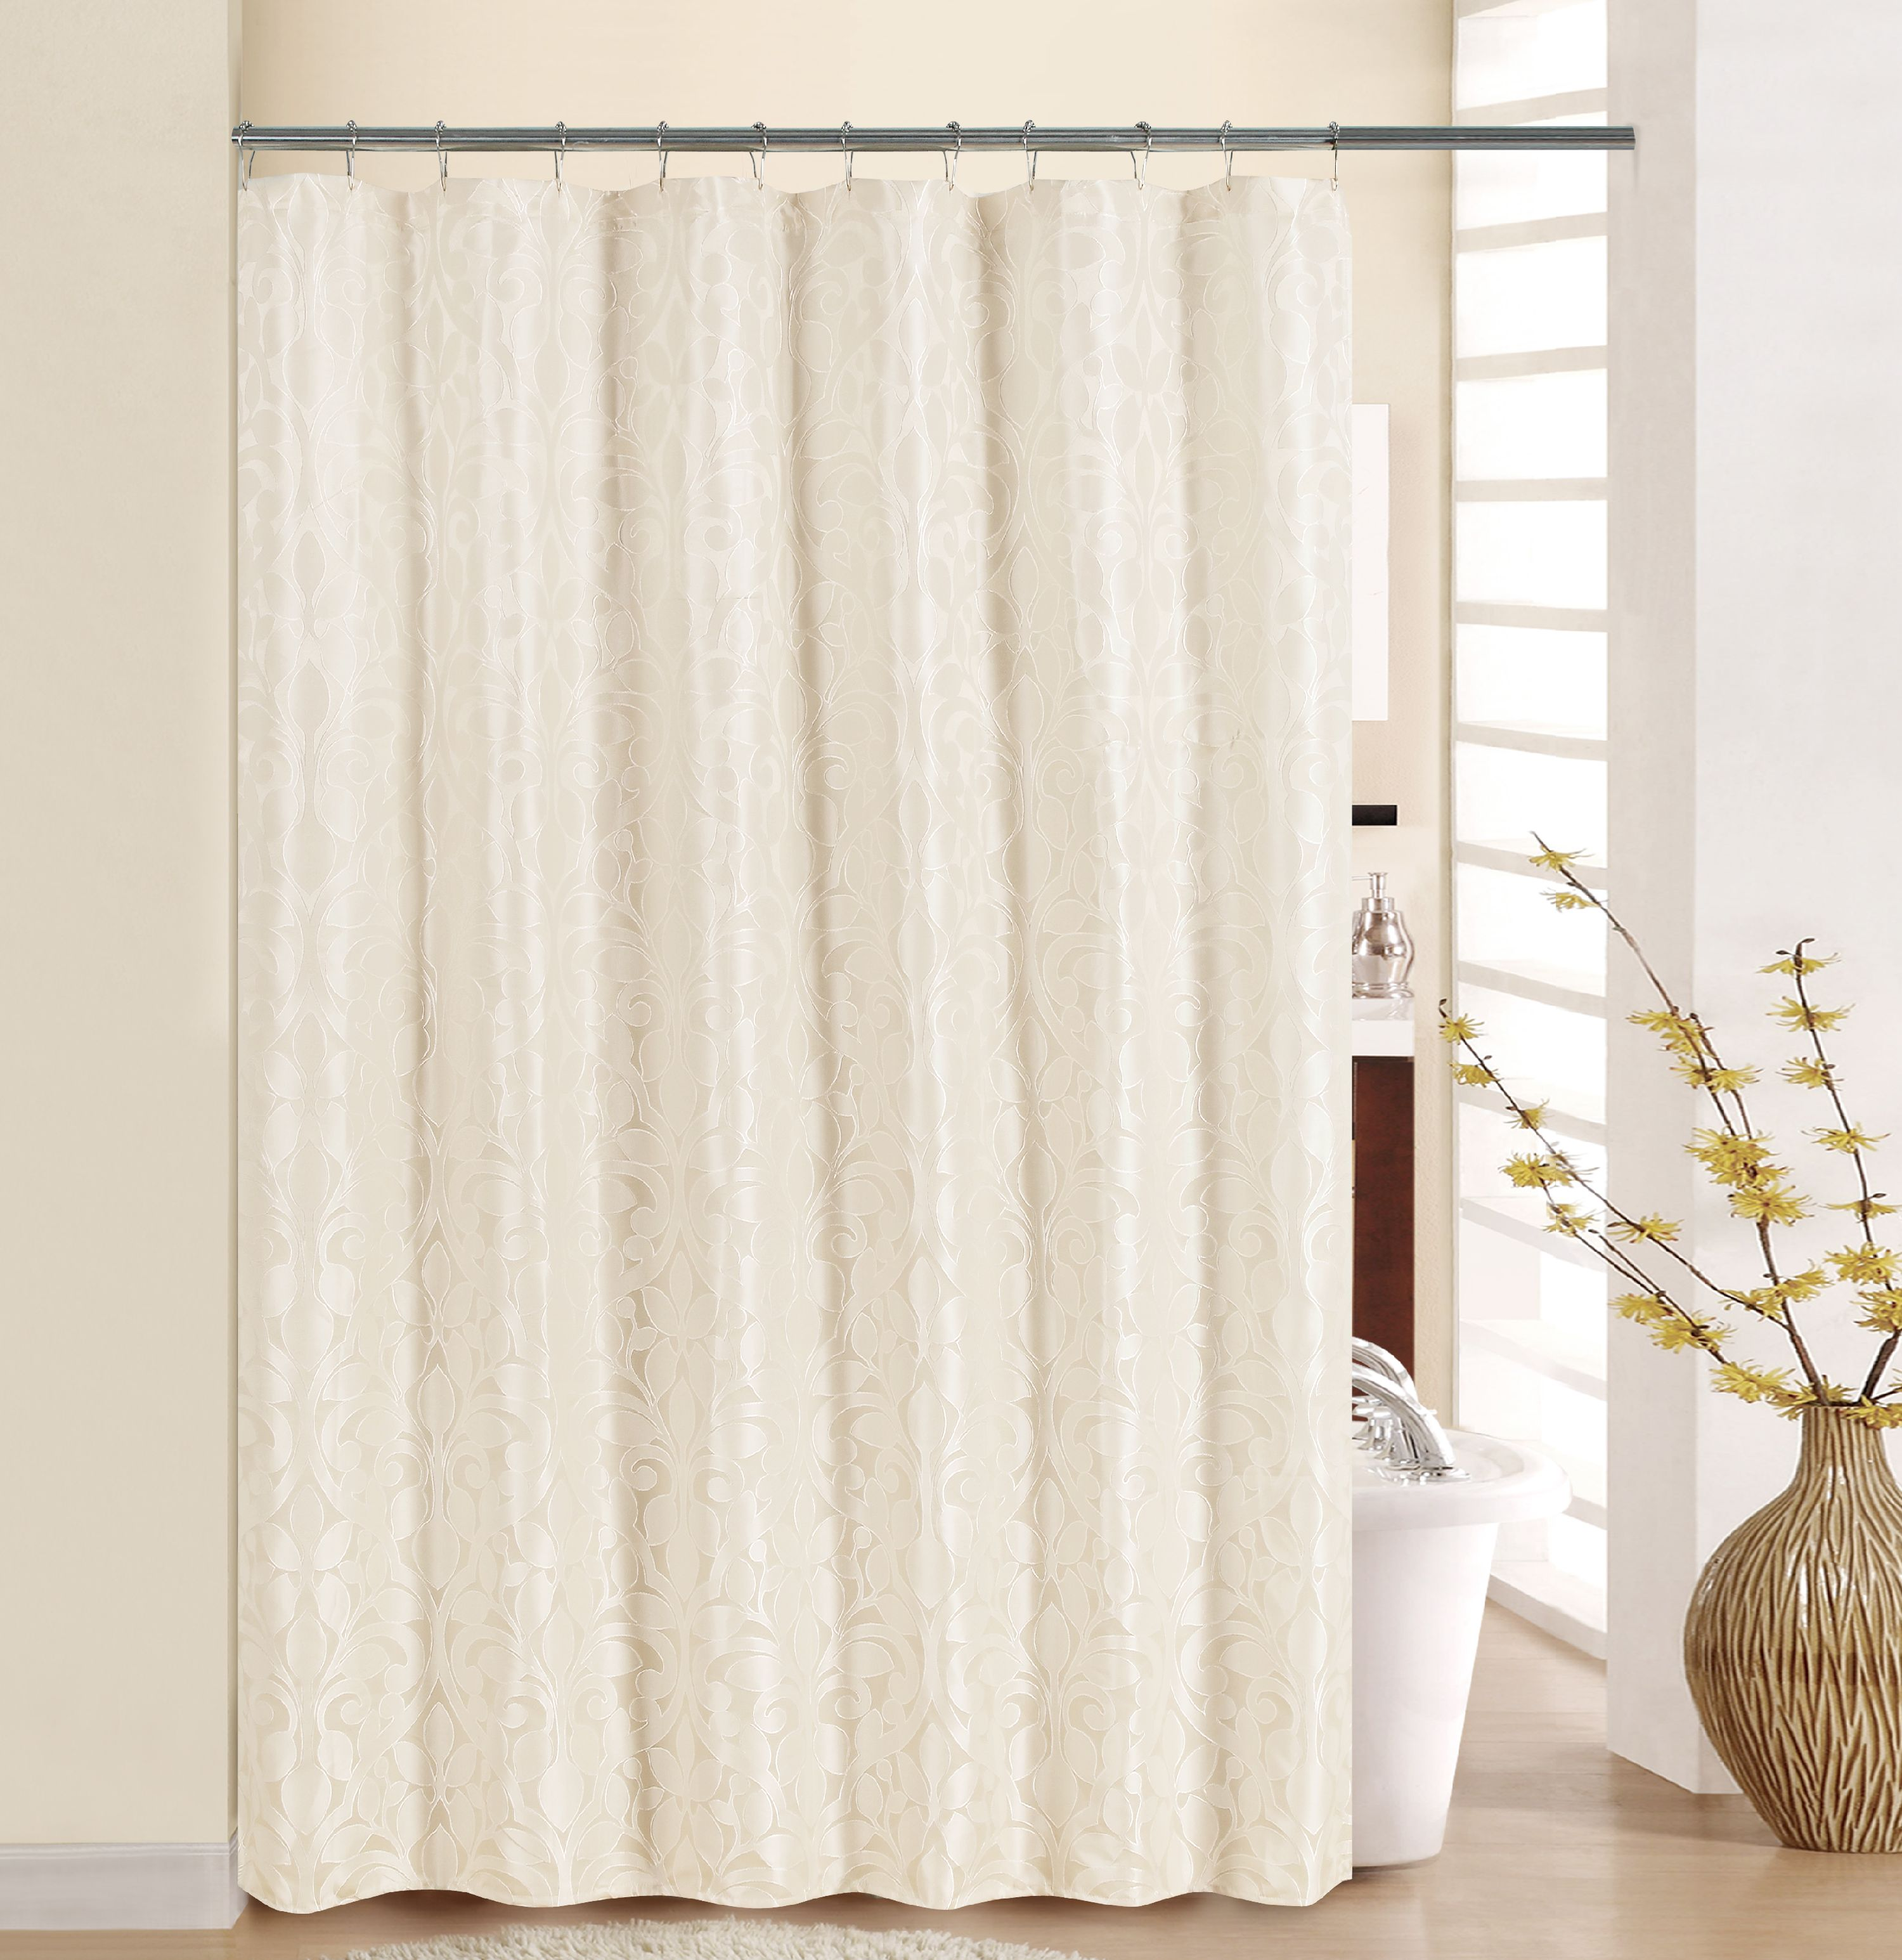 Better Homes And Gardens Damask Scroll Shower Curtain   Ivory Image 1 Of 1